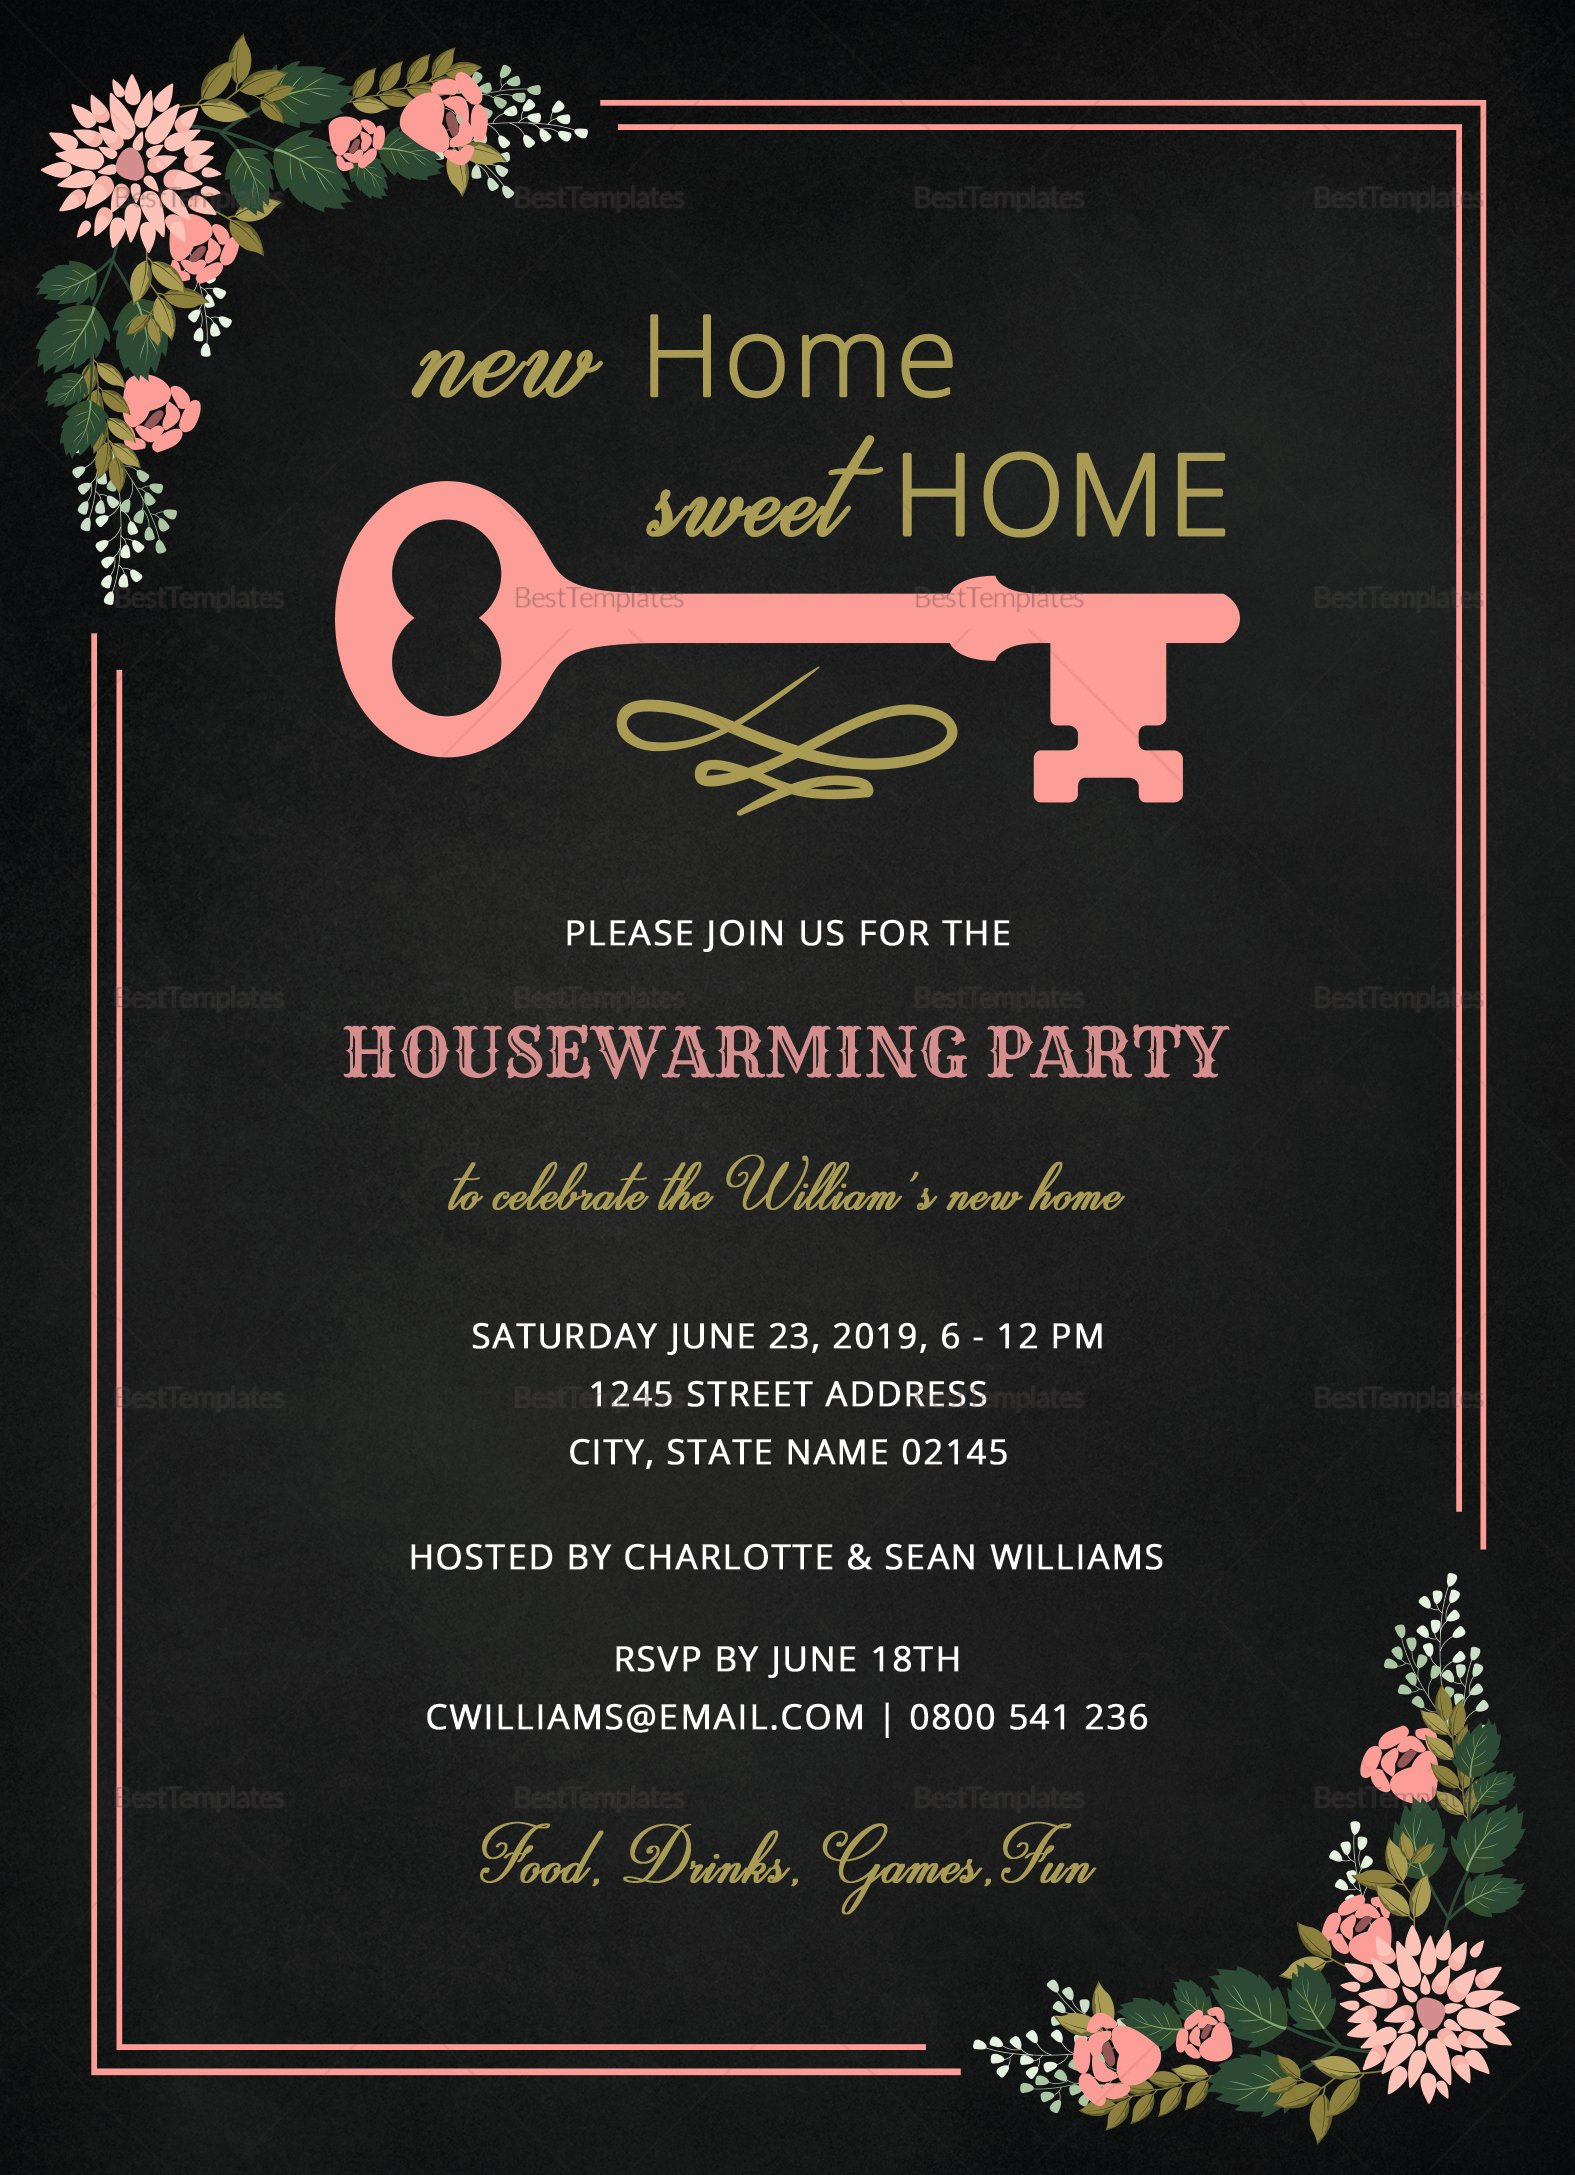 Housewarming Images for Invitation Fresh Chalkboard Housewarming Invitation Design Template In Word